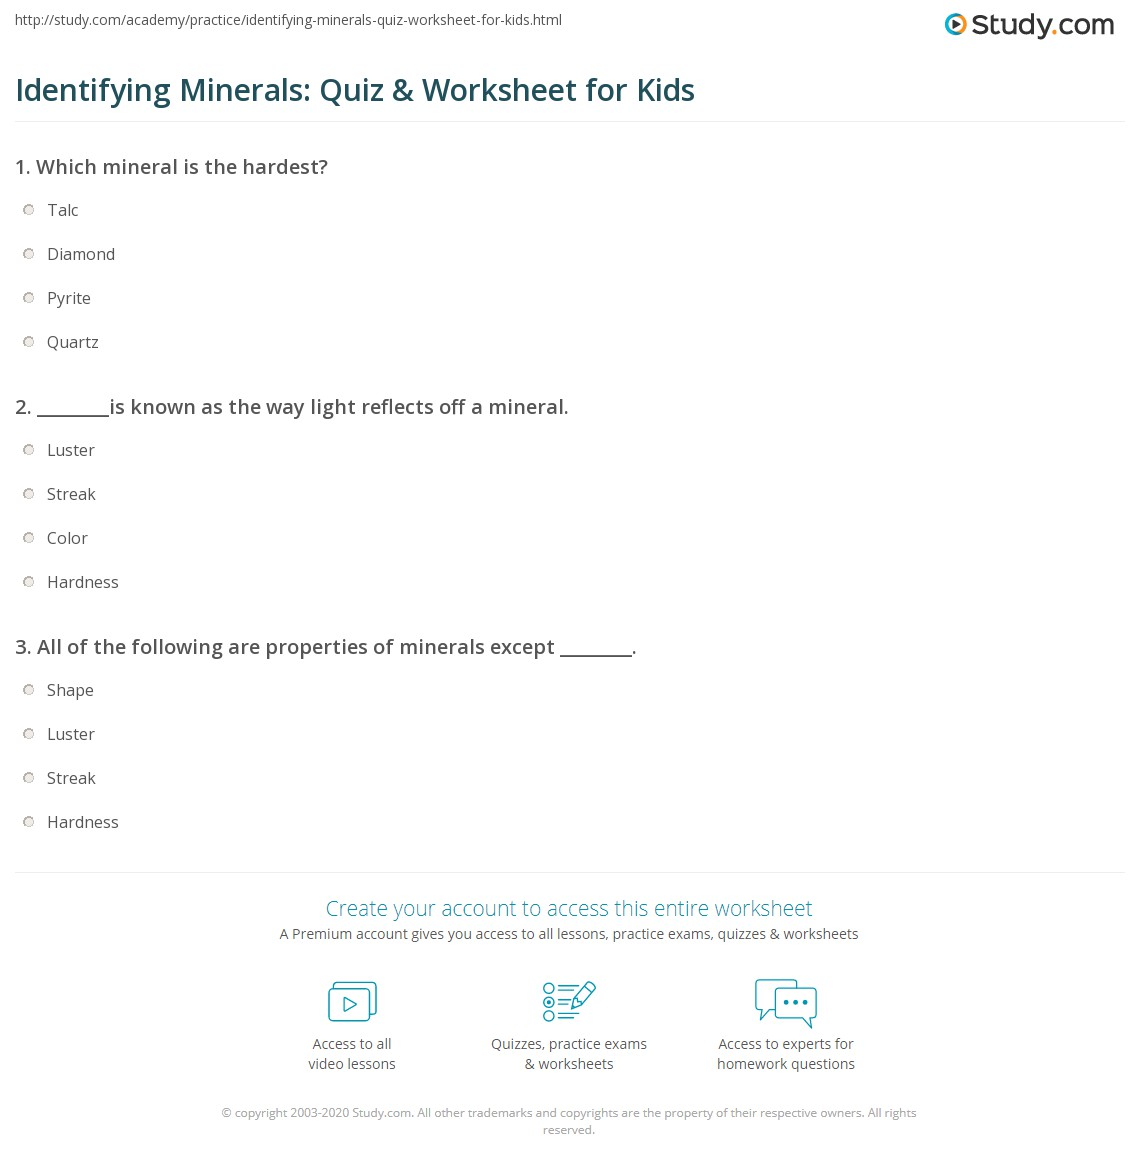 Identifying Minerals: Quiz & Worksheet for Kids | Study.com